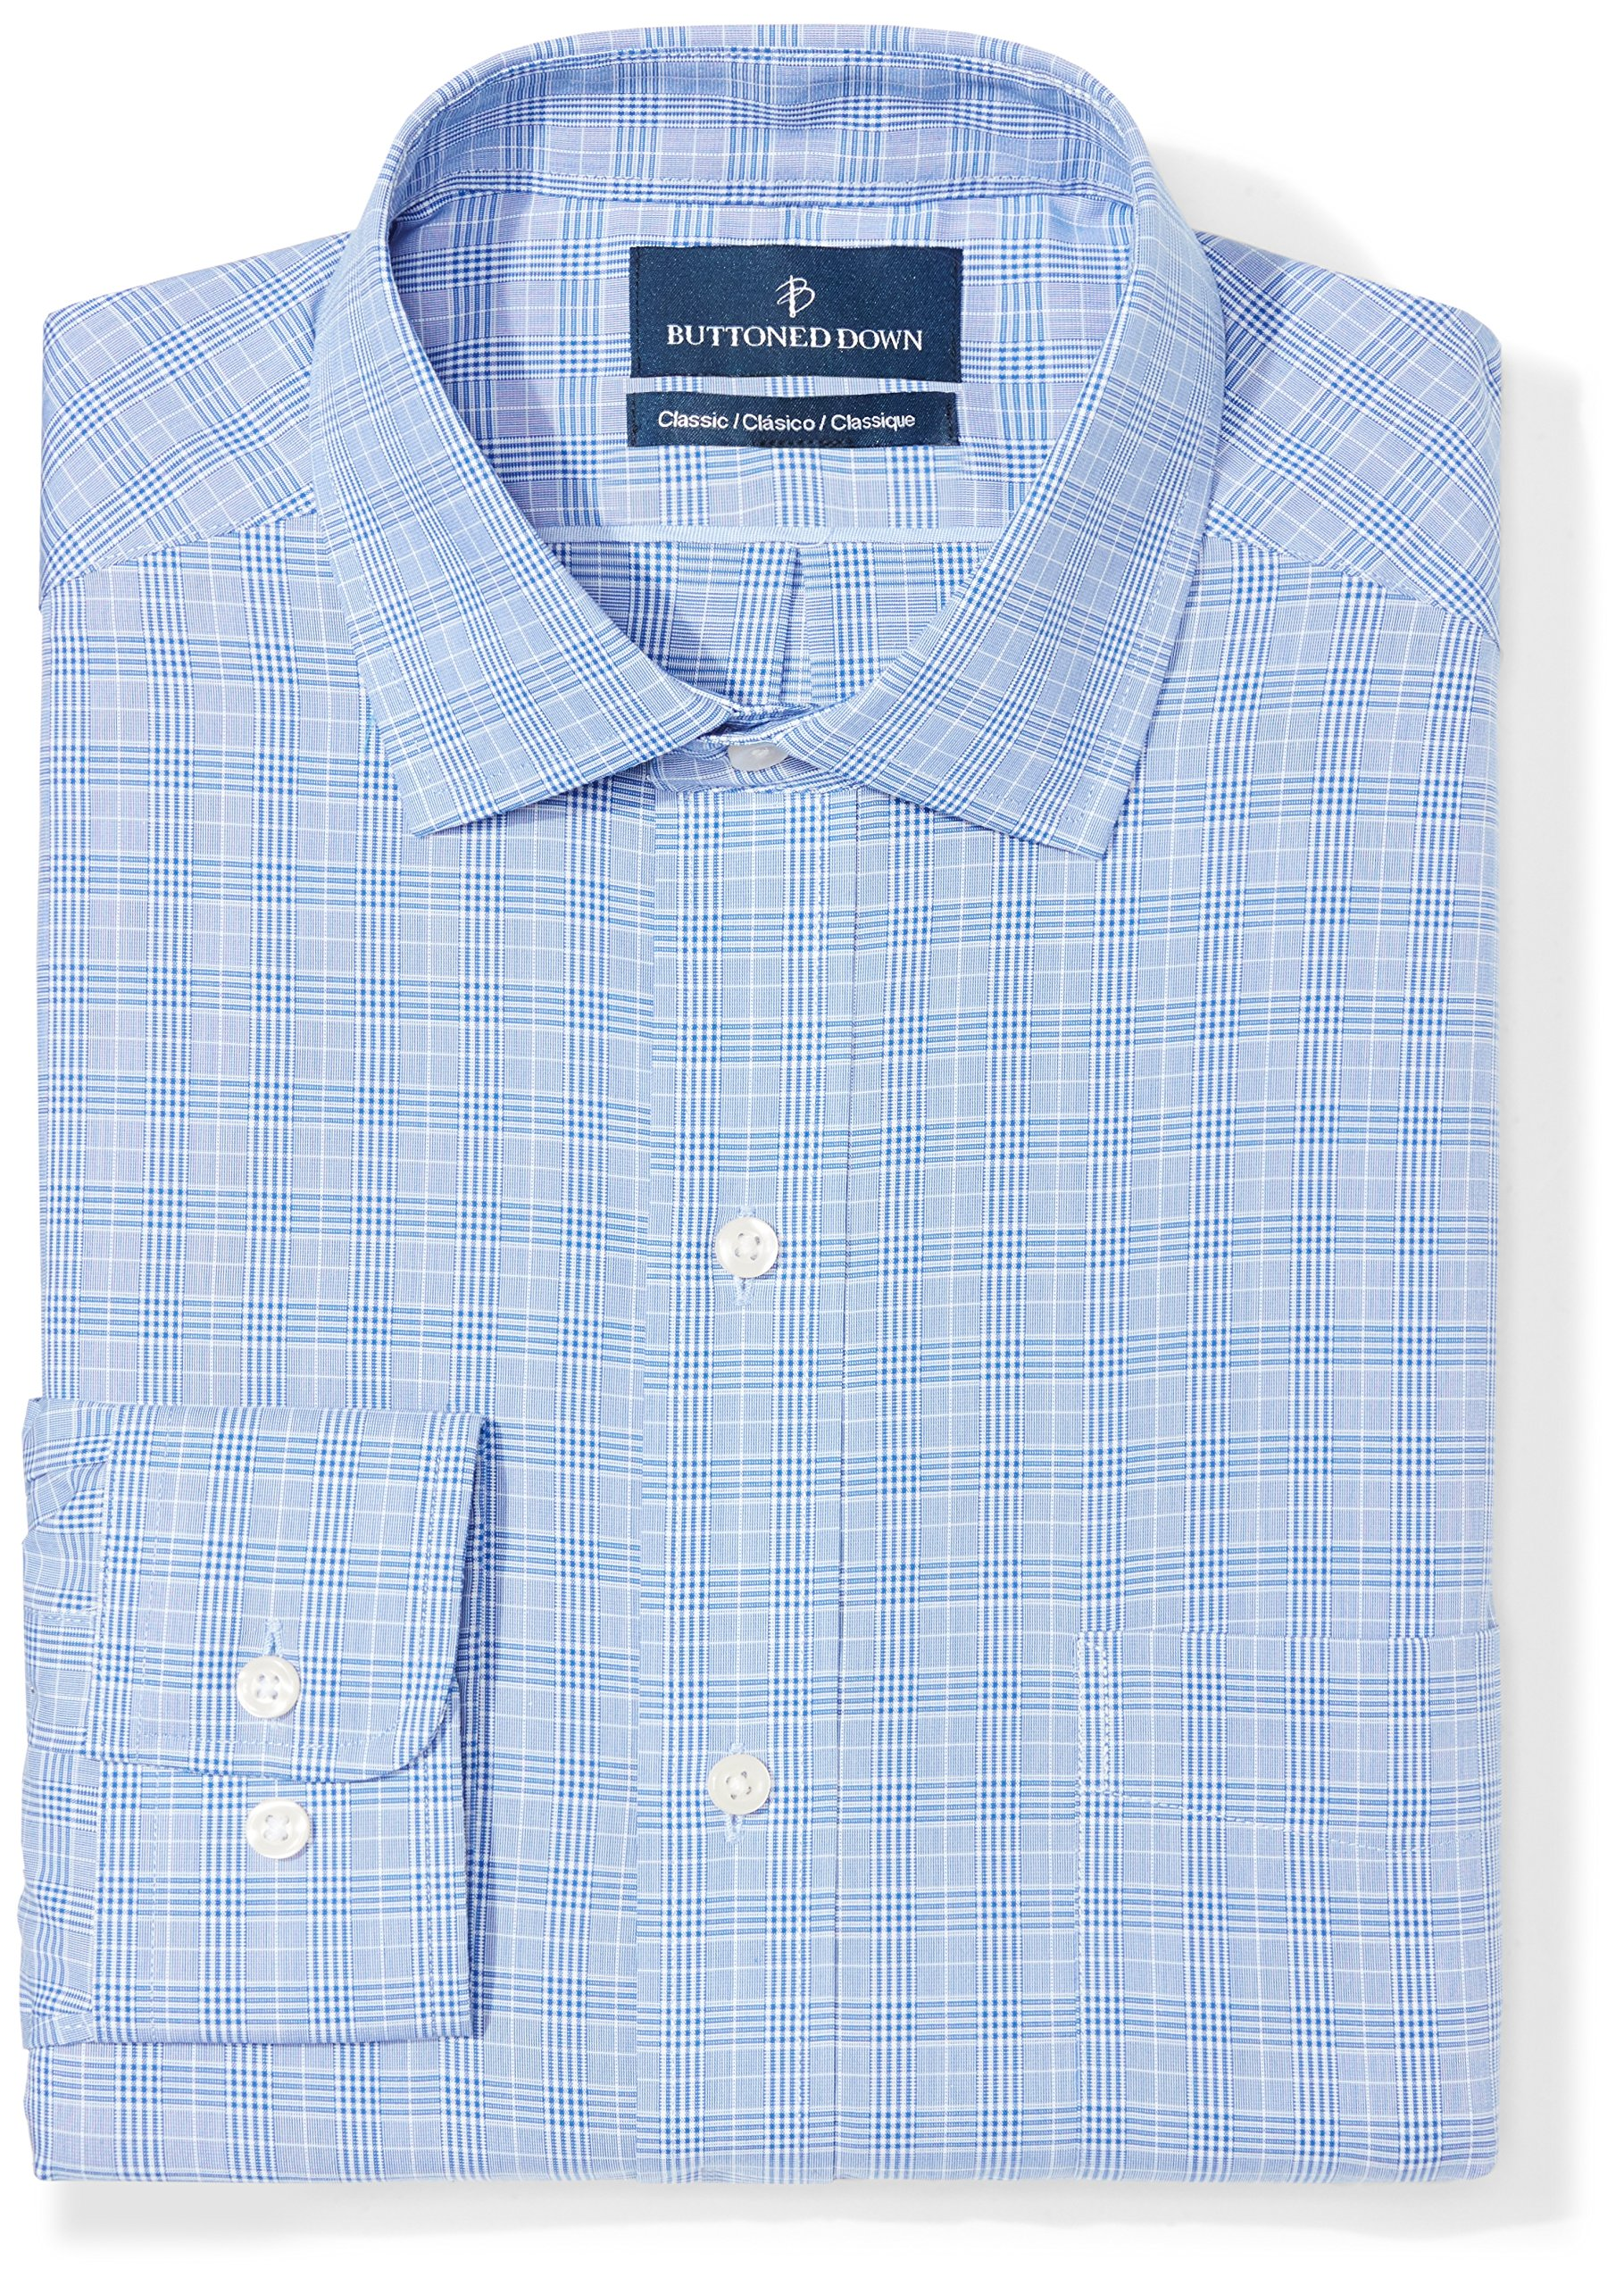 BUTTONED DOWN Men's Classic Fit Spread-Collar Non-Iron Dress Shirt, Blue Glen Plaid, 19'' Neck 39'' Sleeve (Big and Tall)